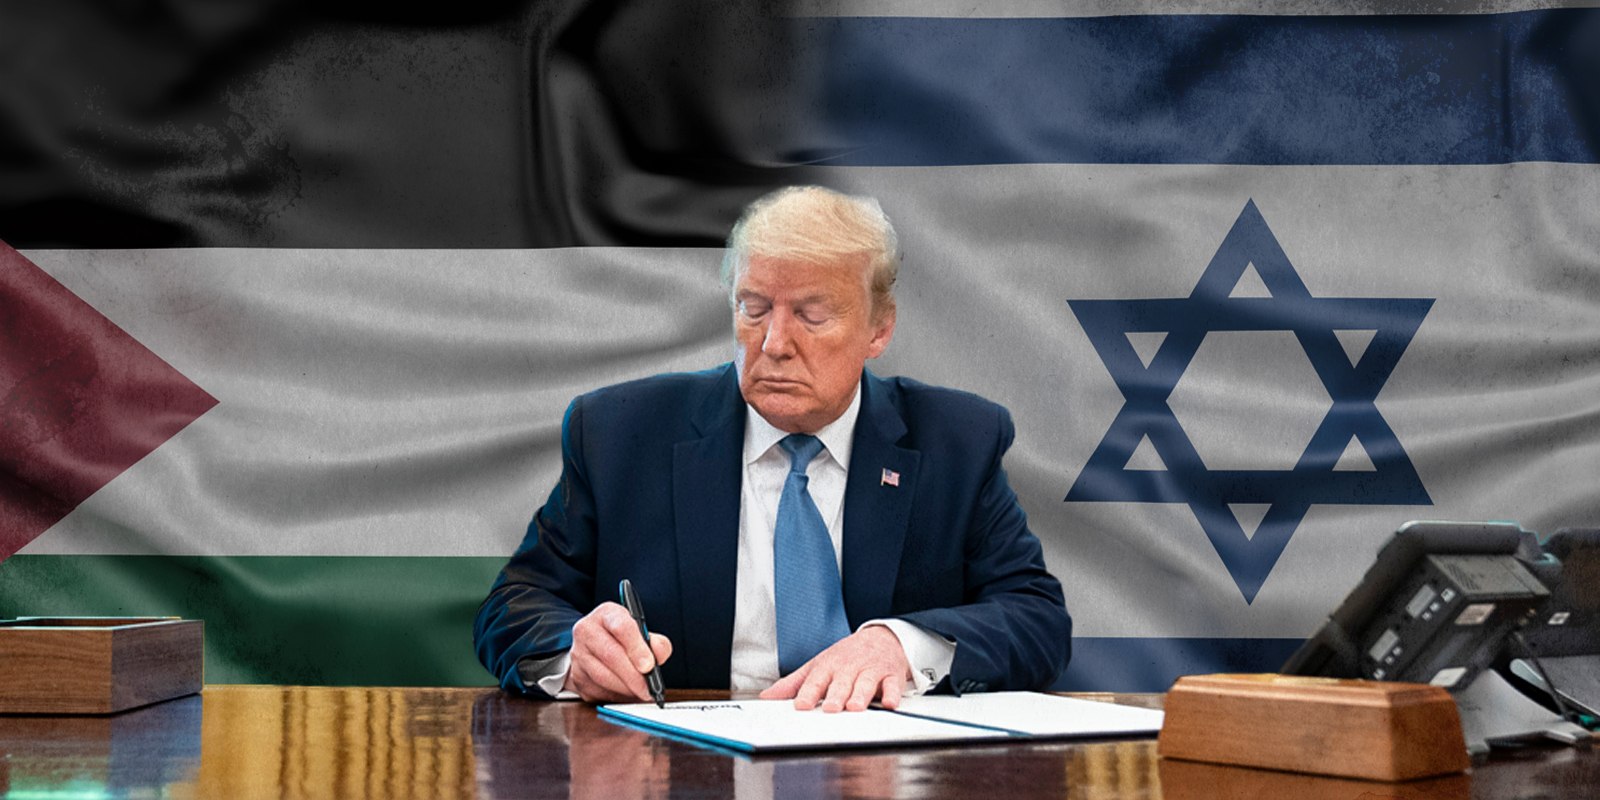 Trump With Israel and Palestine flag